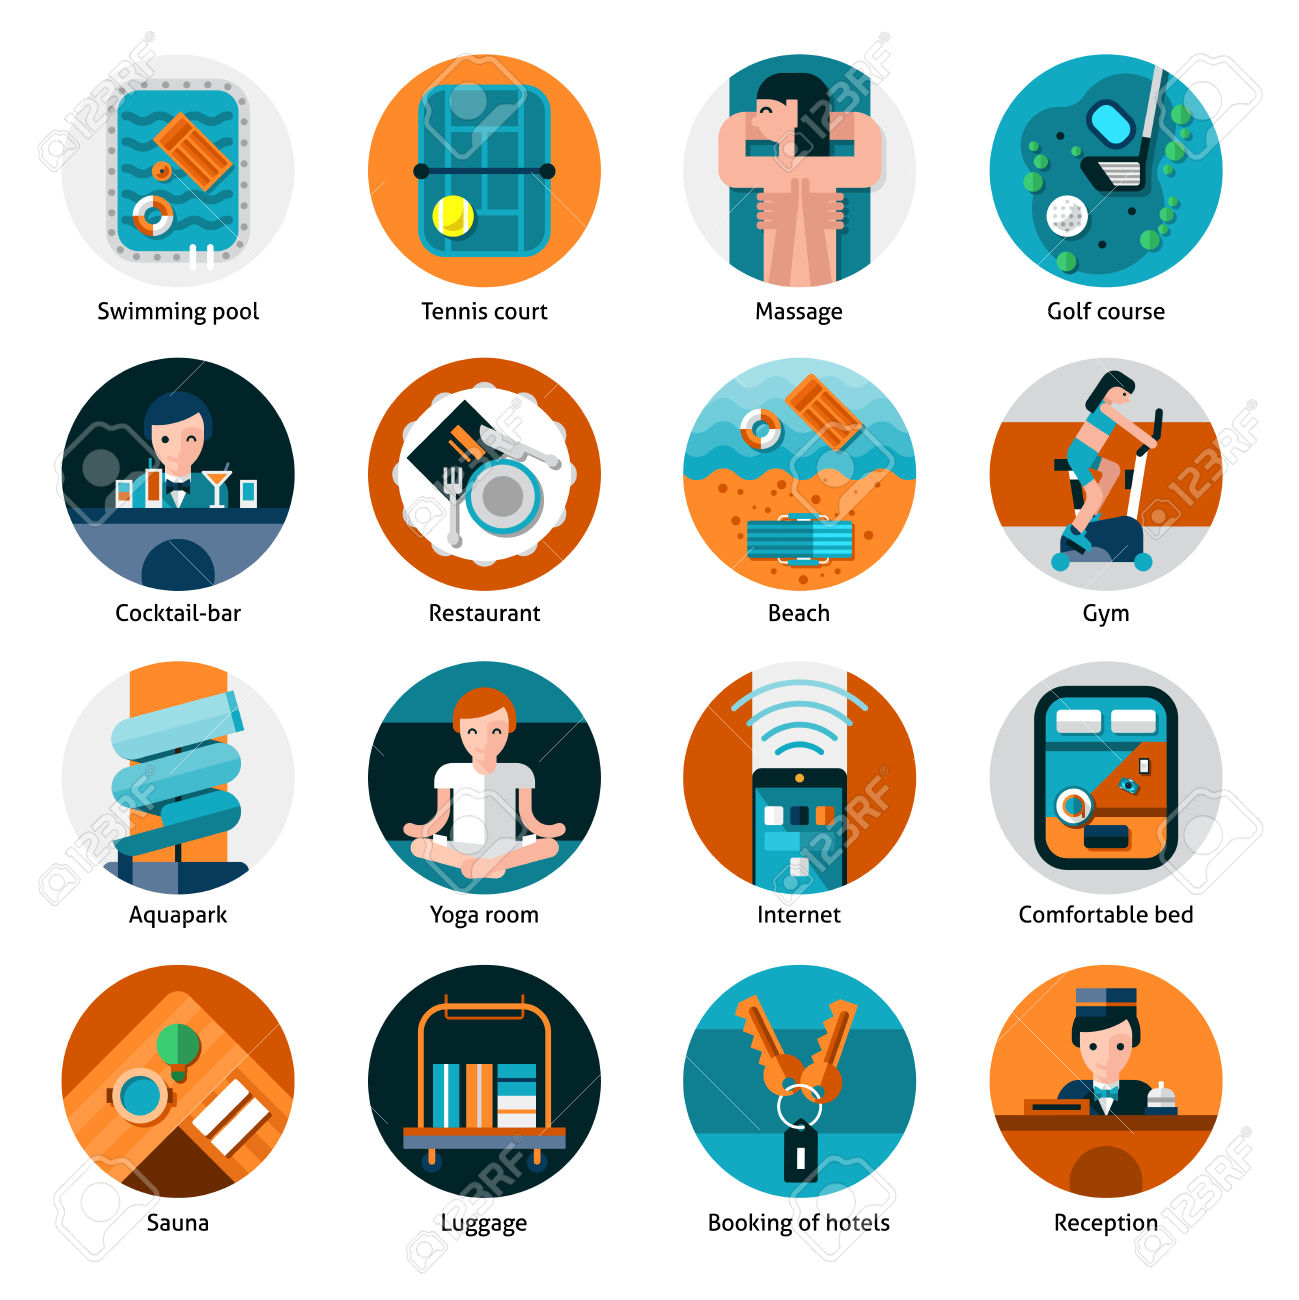 Hotel Offers And Facilities Round Icons Set With Sports Recreation.